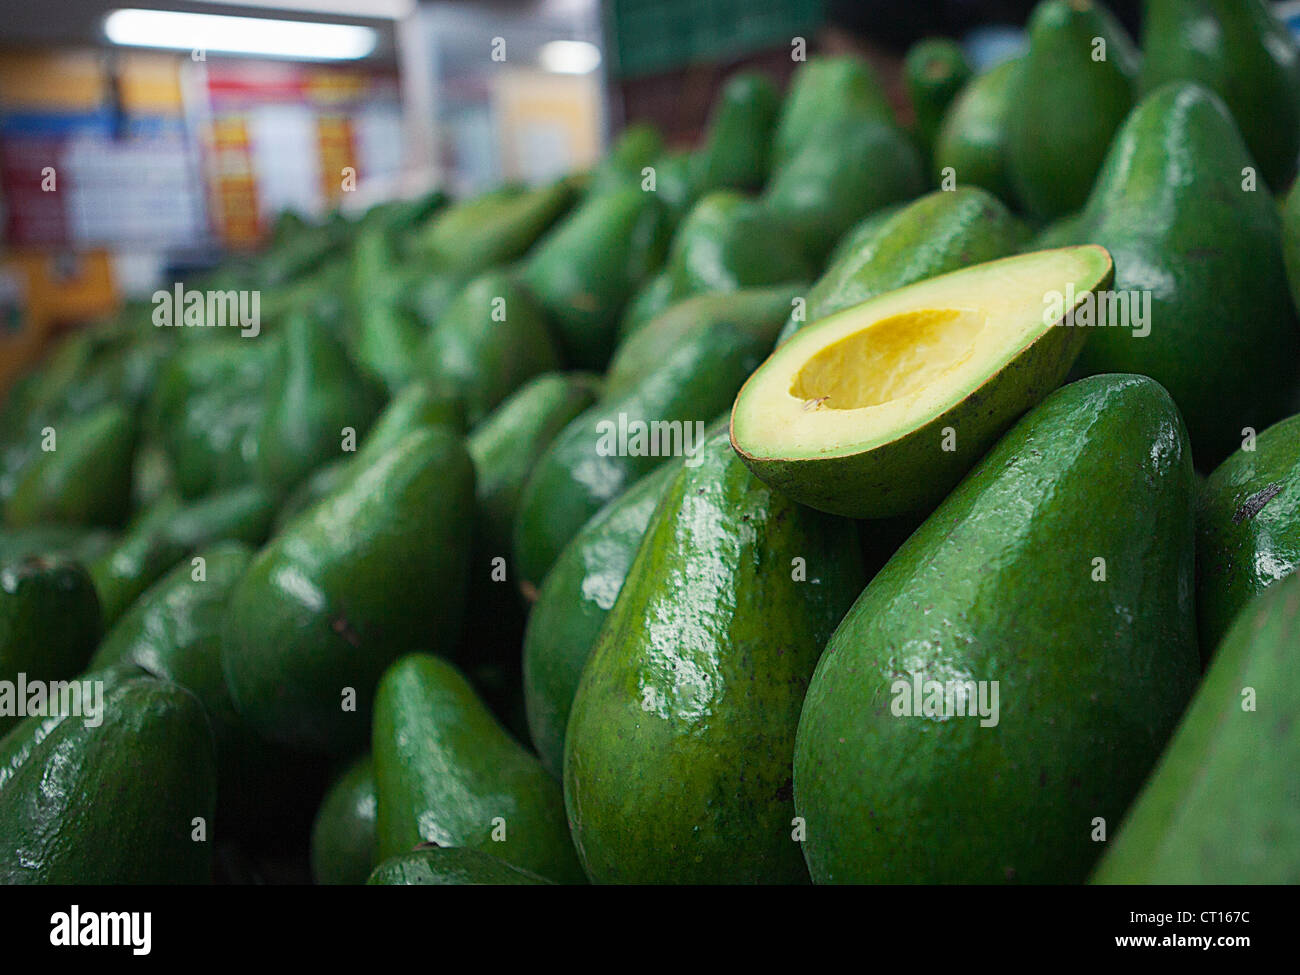 Close up of sliced avocado for sale - Stock Image